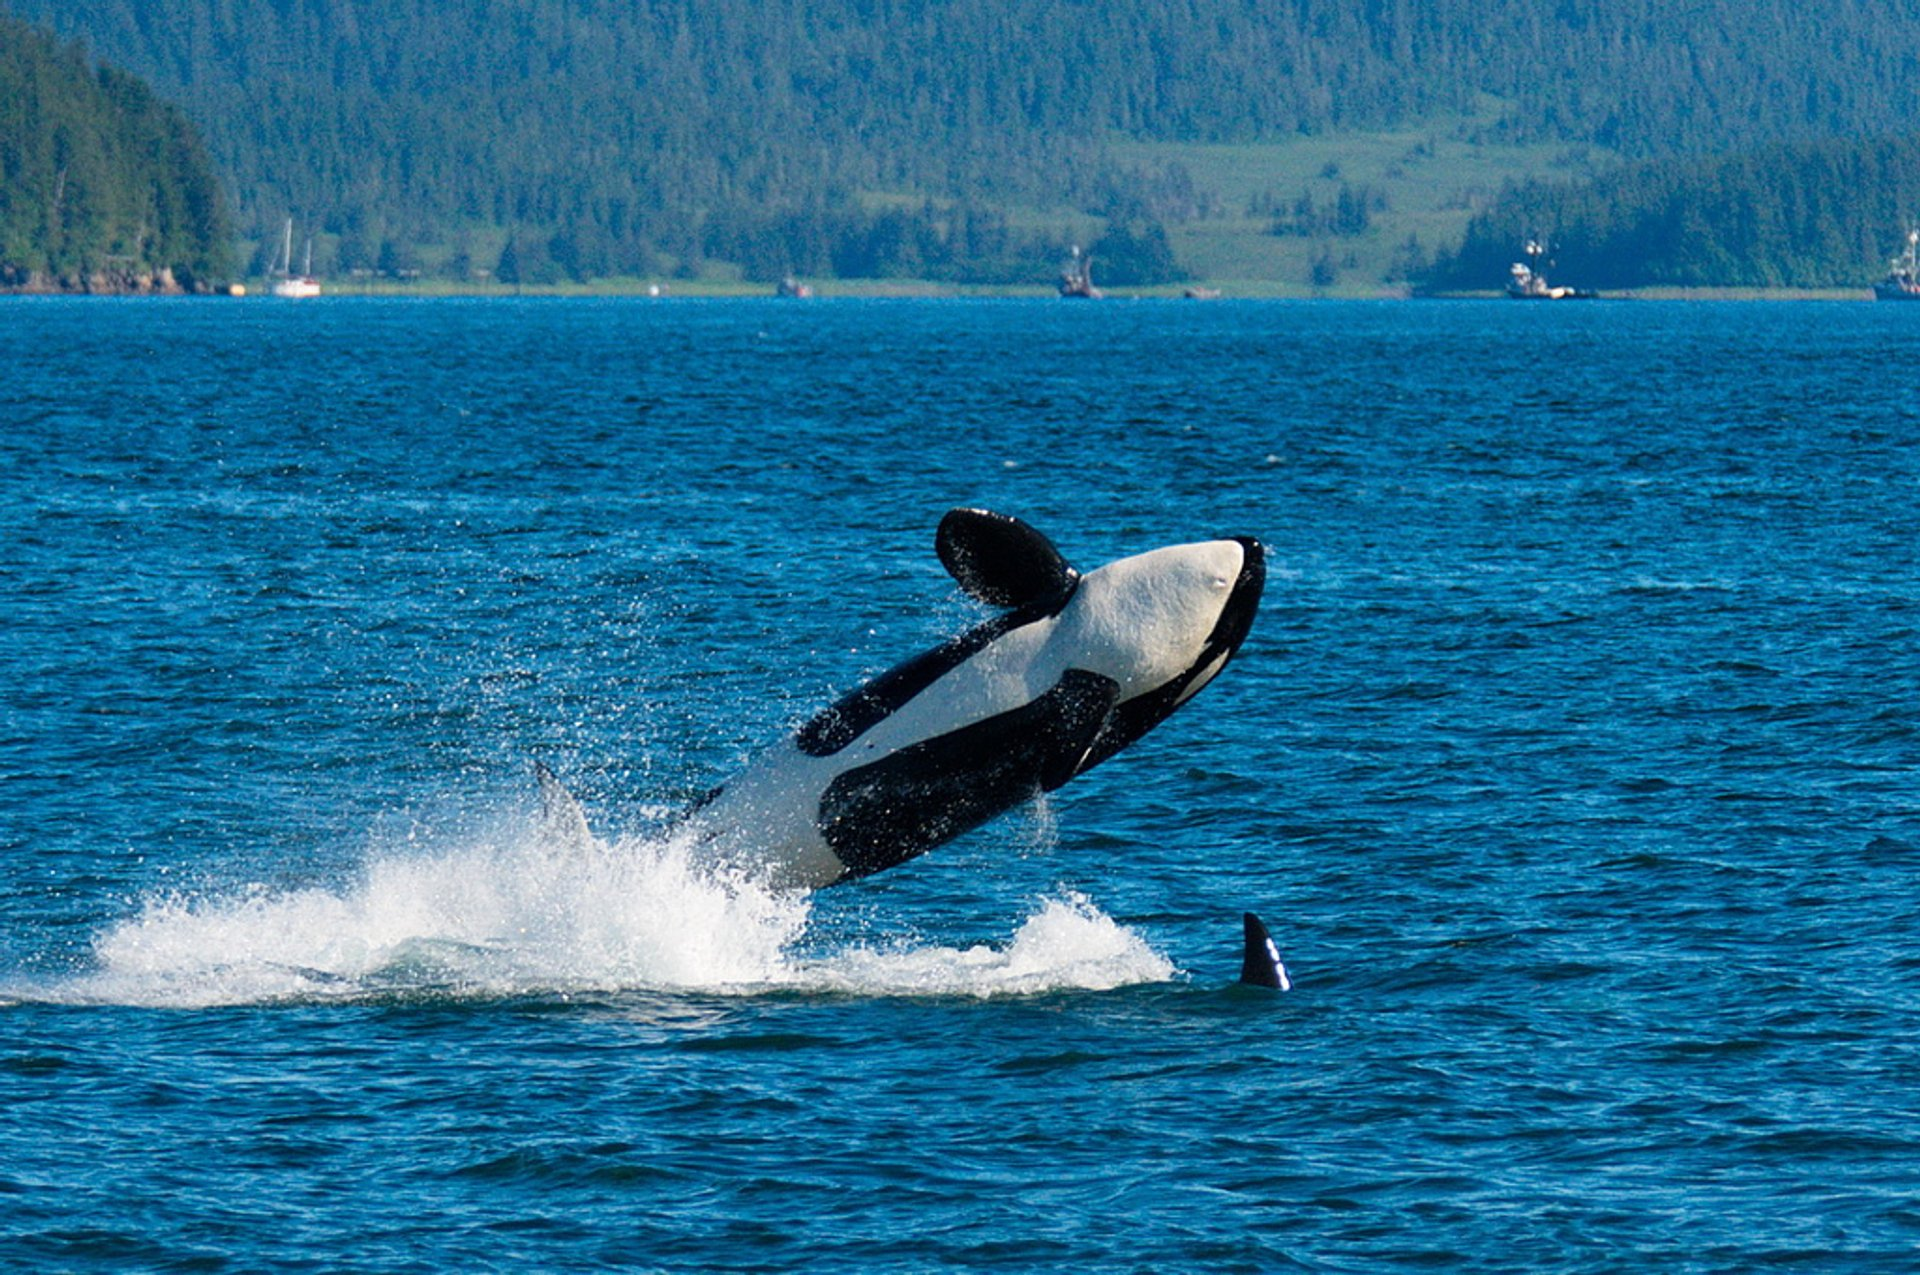 Whale Watching in Alaska 2019 - Best Time